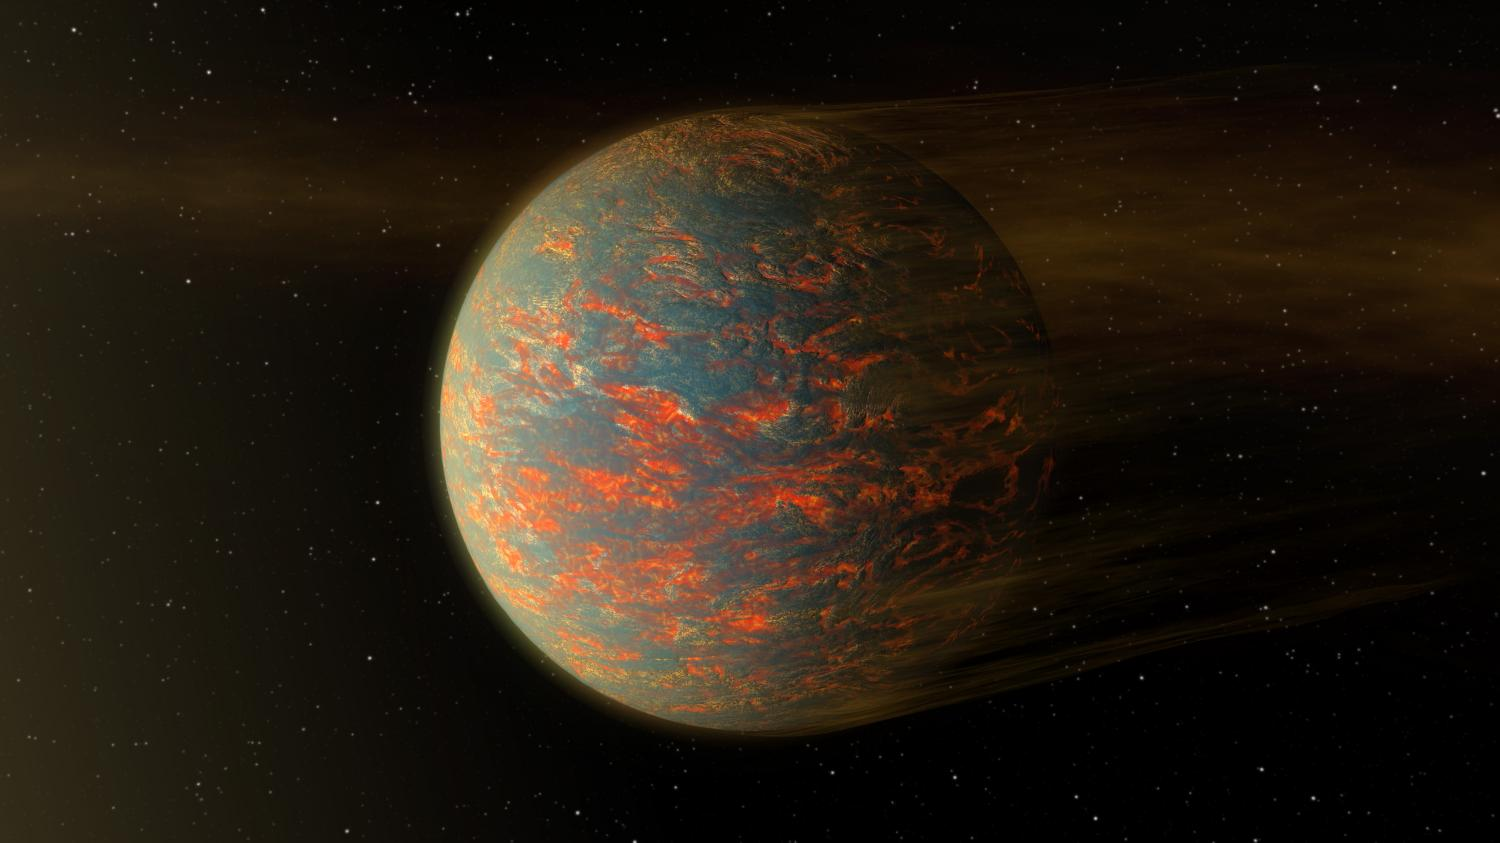 Cancri e is a world of two halves